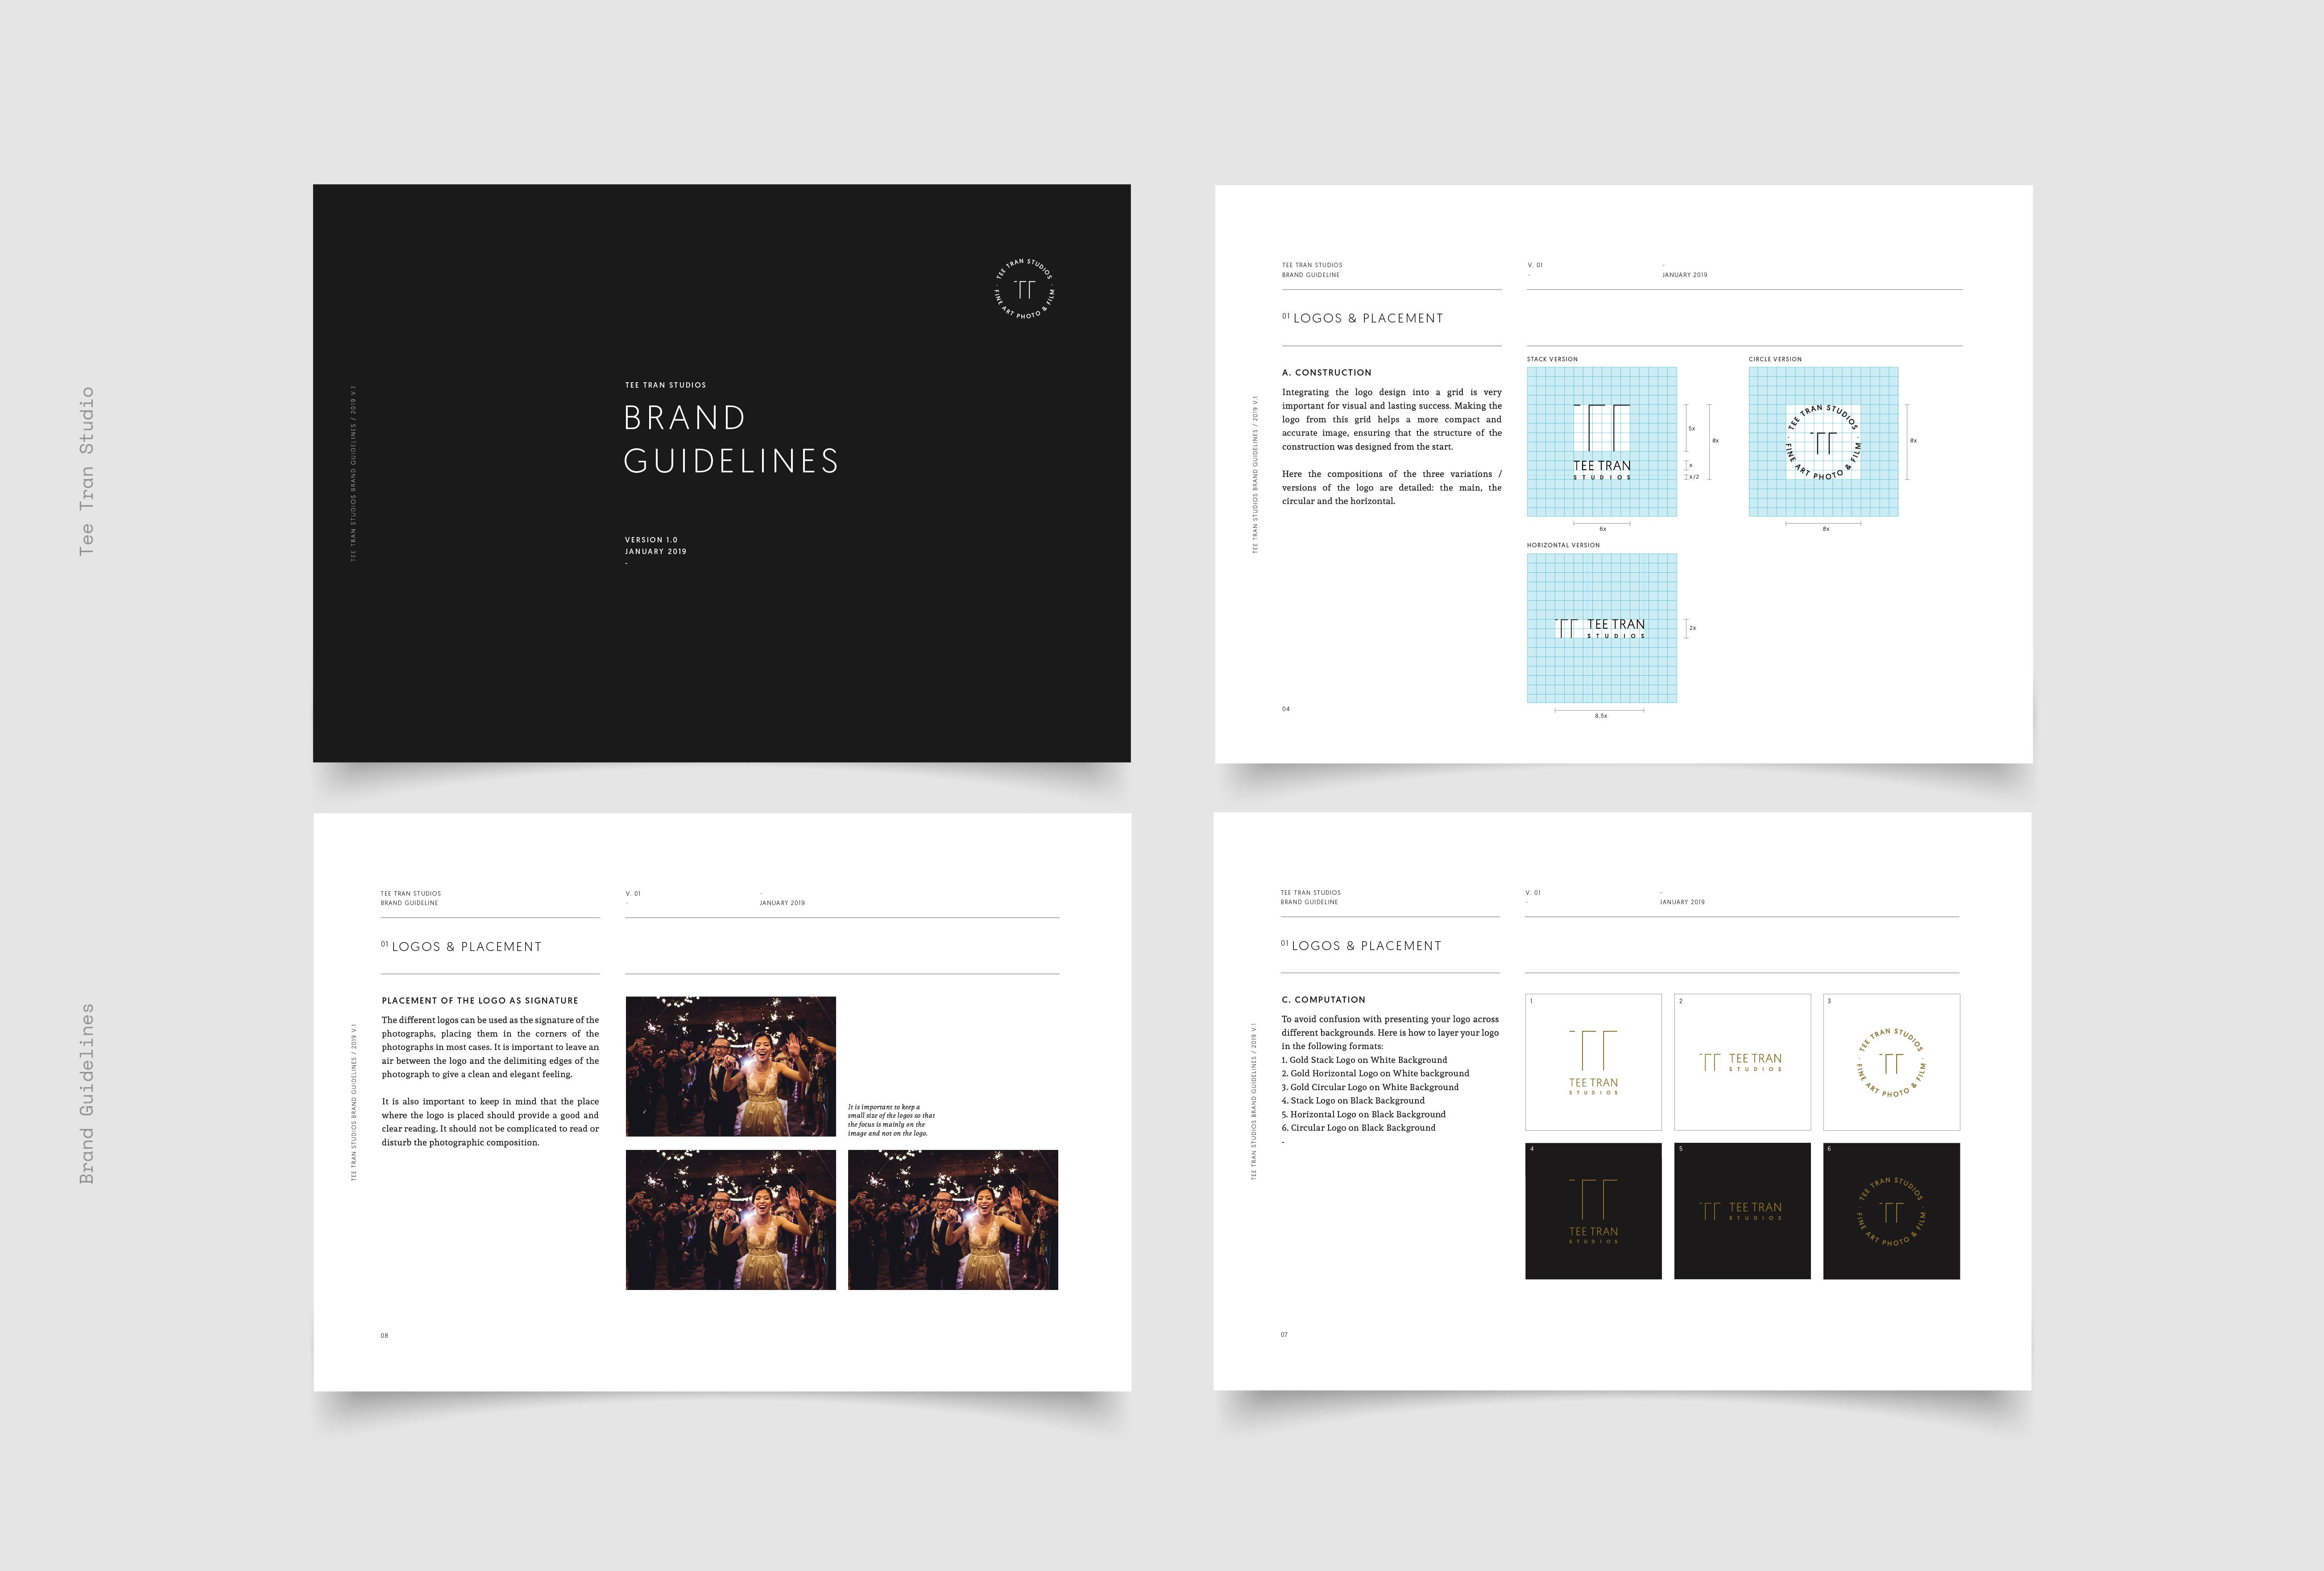 Design A Full Brand Visual Guideline Brand Style Guide Style